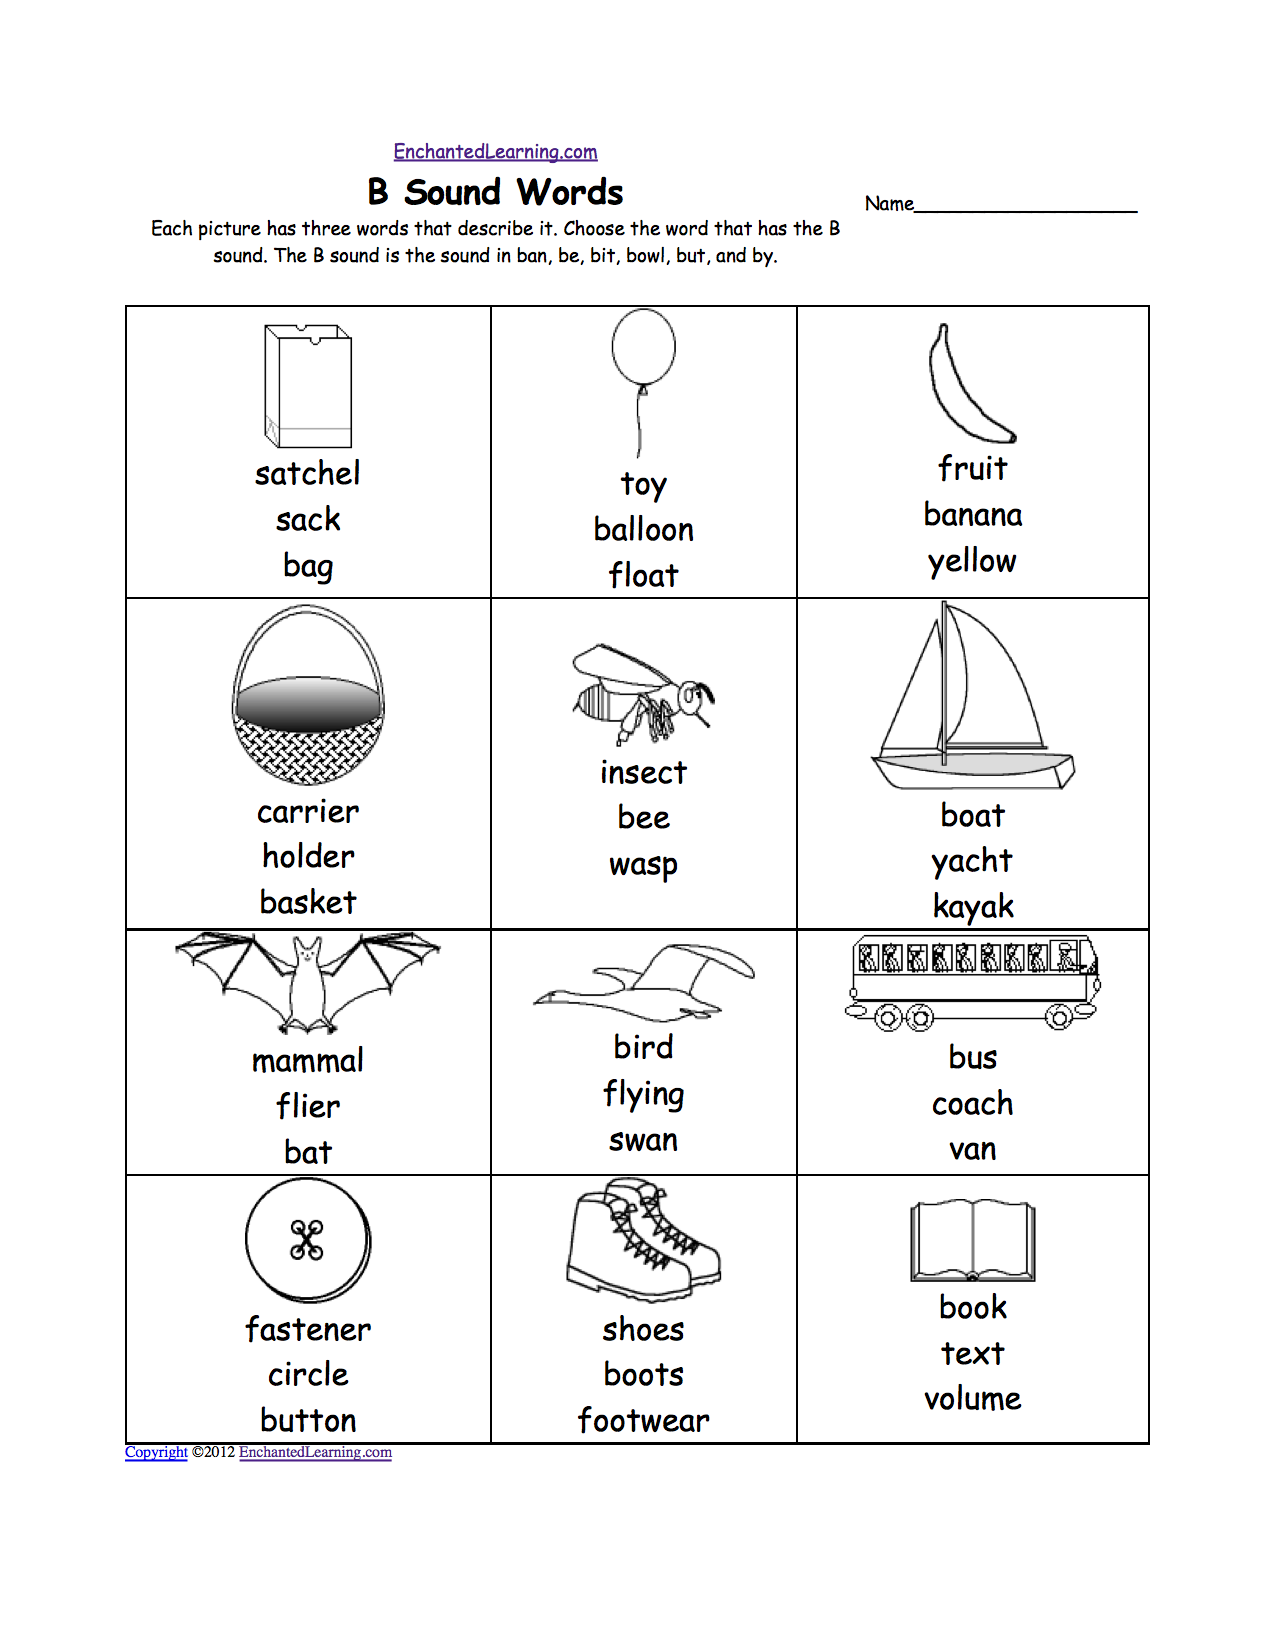 Aldiablosus  Winning Phonics Worksheets Multiple Choice Worksheets To Print  With Luxury Quotbquot Sound Phonics Worksheet Multiple Choice Each Picture Has Three Words That Describe It Choose The Word That Has A Quotbquot Sound The Quotbquot Sound Is The Sound  With Extraordinary Grammar Worksheets For Adults Also Free First Grade Comprehension Worksheets In Addition Integer Word Problem Worksheets And Free Spanish Printable Worksheets As Well As Rd Grade Math Worksheets Multiplication And Division Additionally Fun Worksheets For Nd Graders From Enchantedlearningcom With Aldiablosus  Luxury Phonics Worksheets Multiple Choice Worksheets To Print  With Extraordinary Quotbquot Sound Phonics Worksheet Multiple Choice Each Picture Has Three Words That Describe It Choose The Word That Has A Quotbquot Sound The Quotbquot Sound Is The Sound  And Winning Grammar Worksheets For Adults Also Free First Grade Comprehension Worksheets In Addition Integer Word Problem Worksheets From Enchantedlearningcom